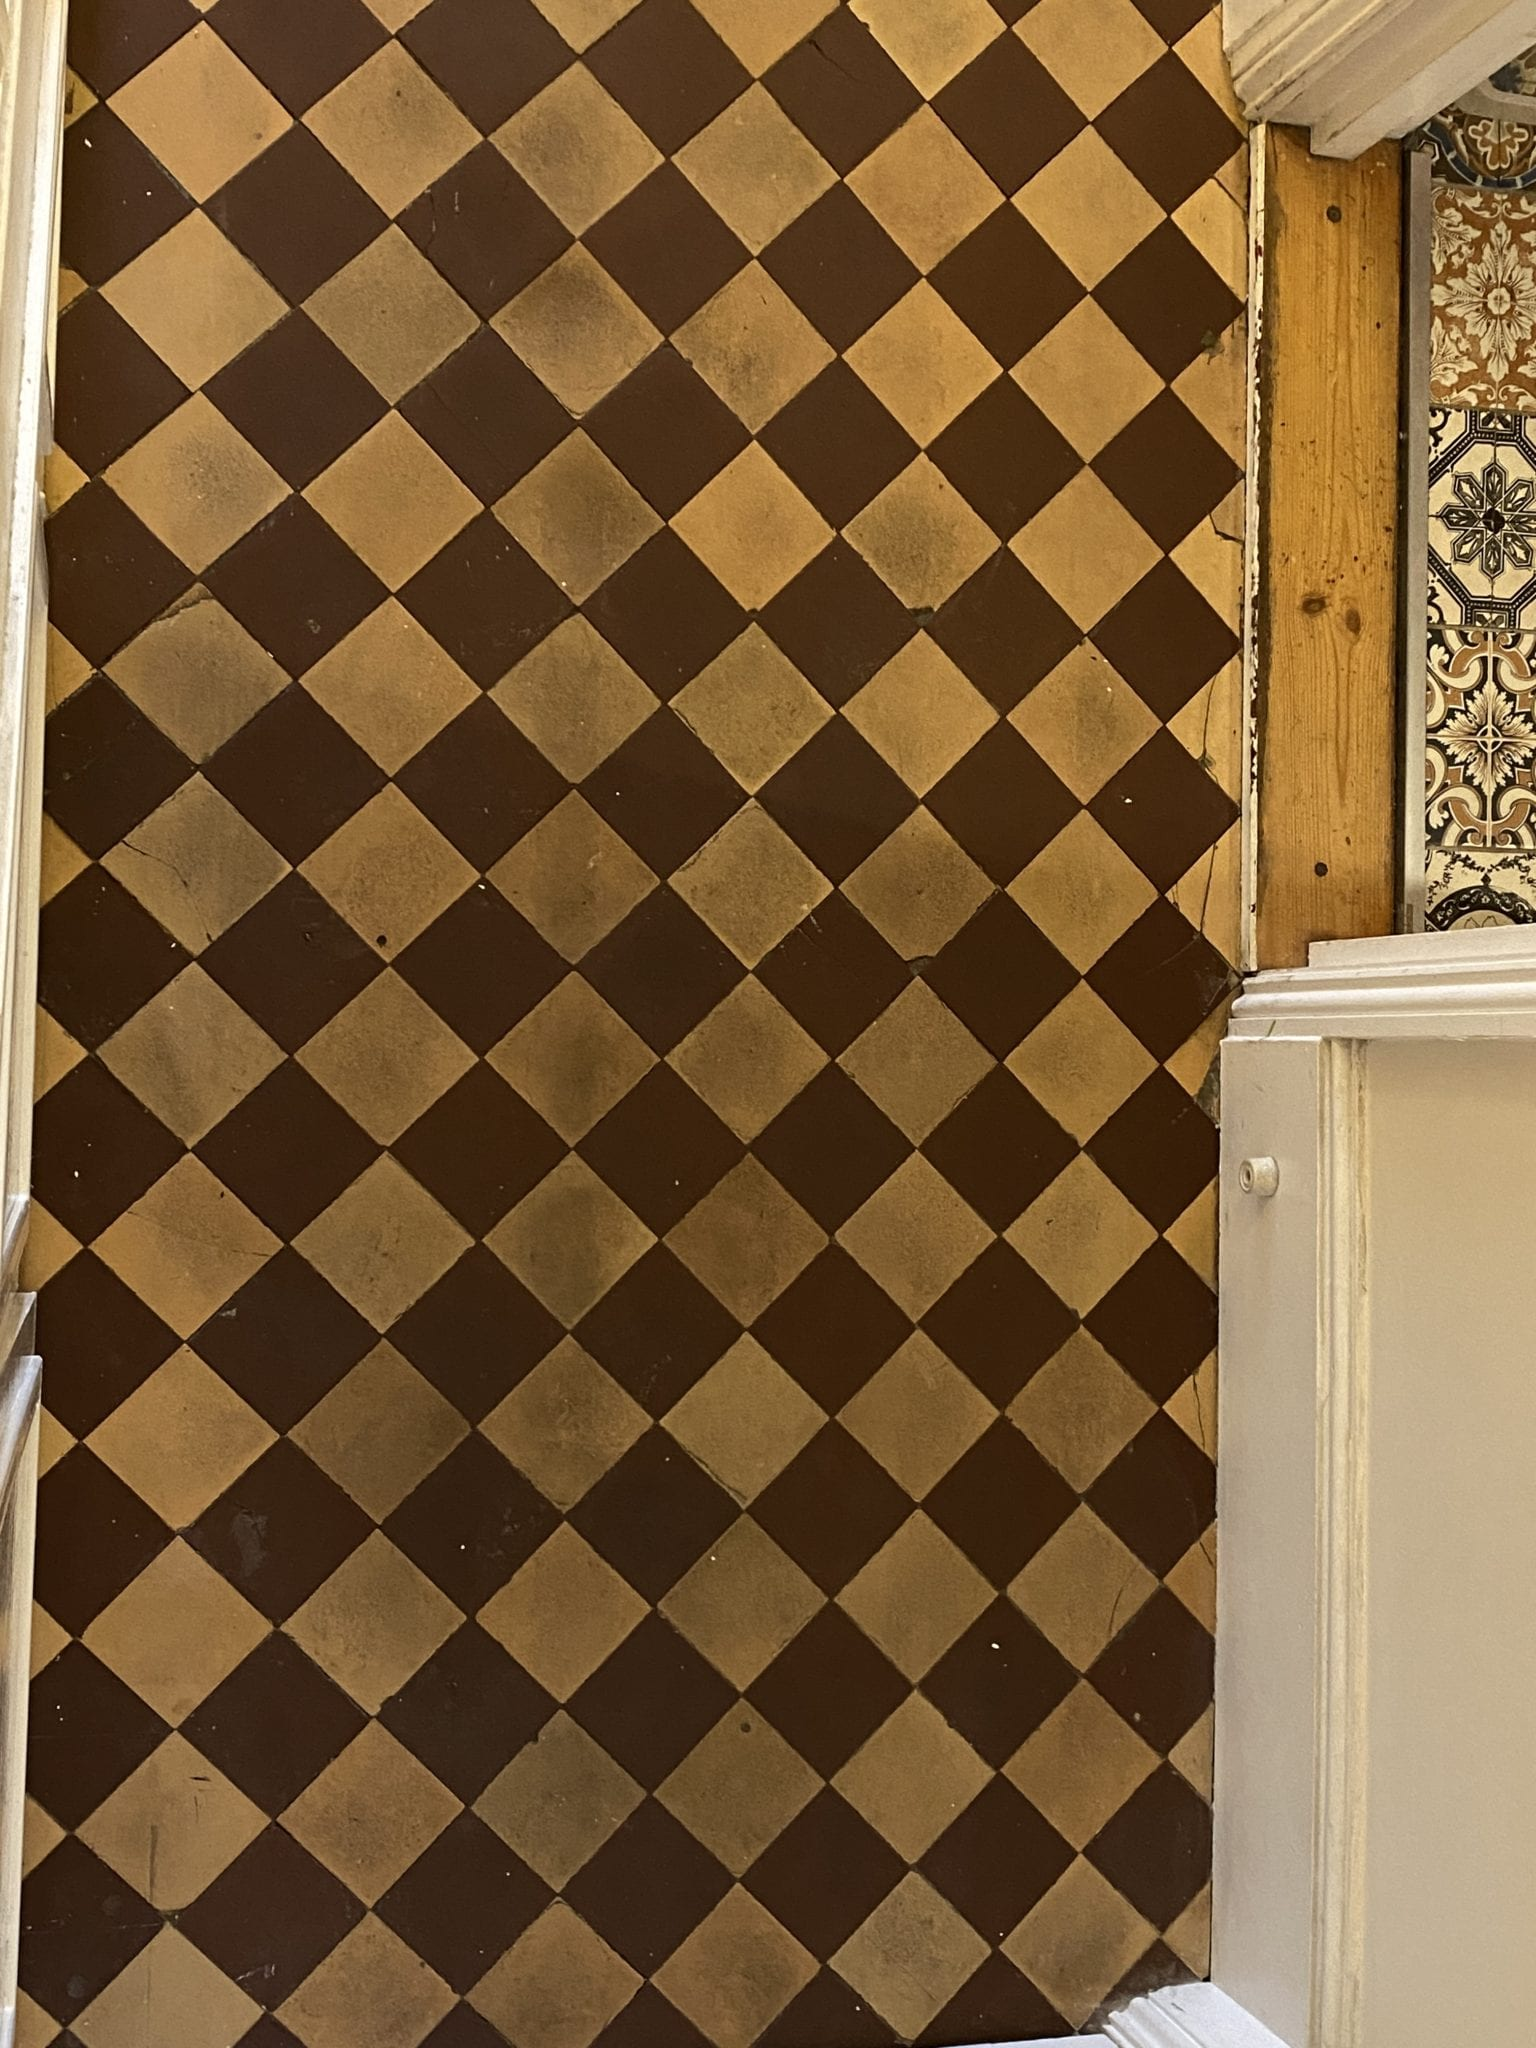 1a Victorian Tile Cleaning service near me